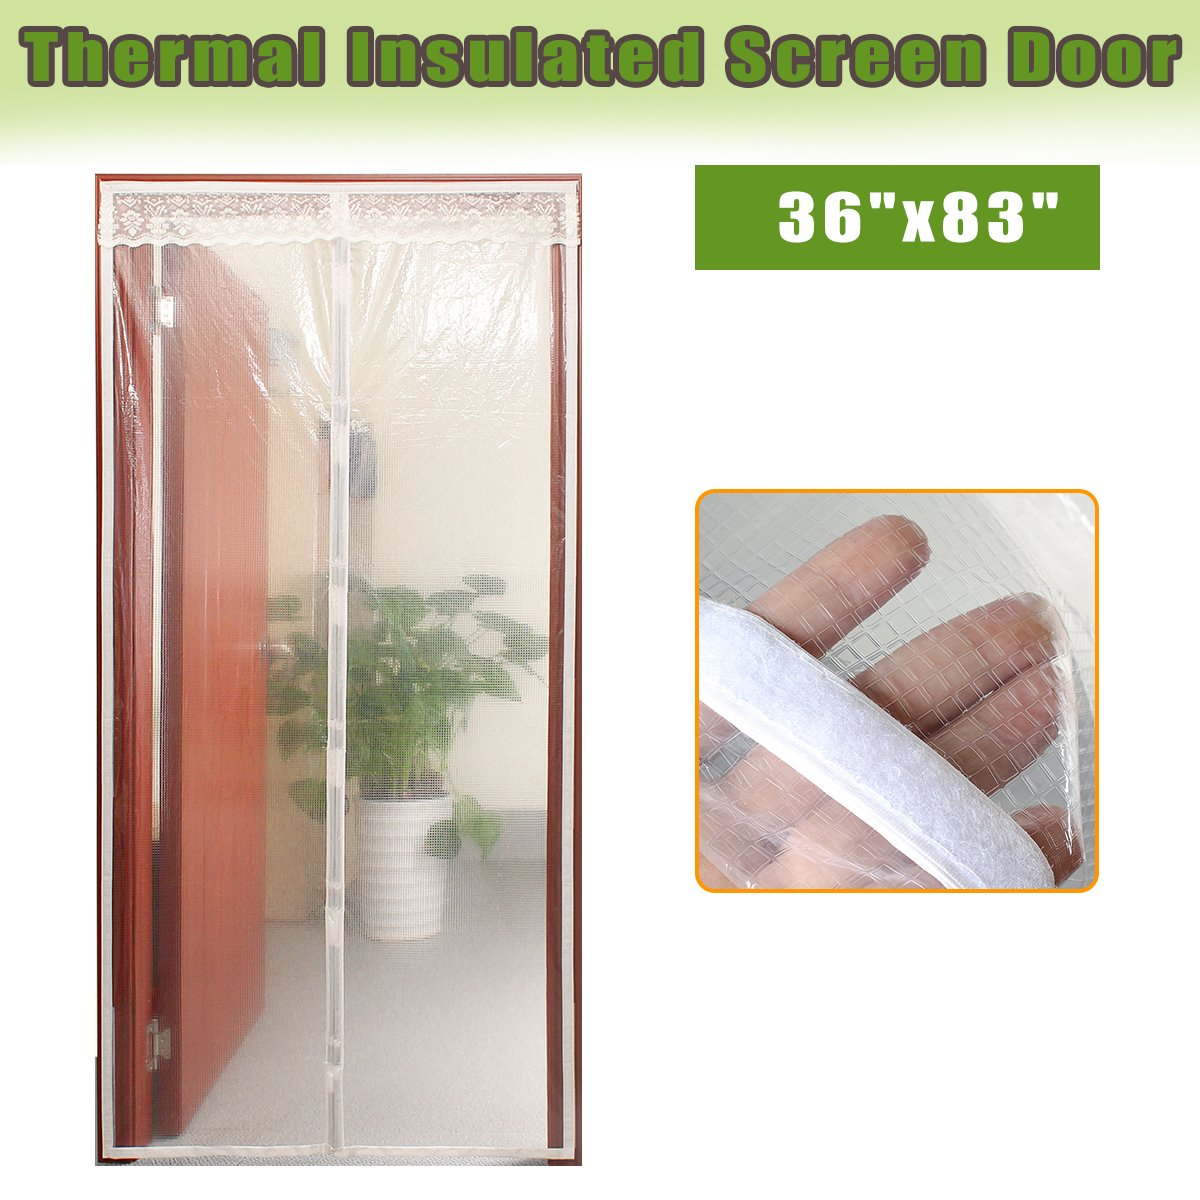 Transparent Magnetic Screen Door Curtain Prevent Air Conditioning Loss Help Saving Electricity Money Enjoy Cool Summer Warm Winter Thermal and Insulated Auto Closer Door Curtain Fits Door 34 82